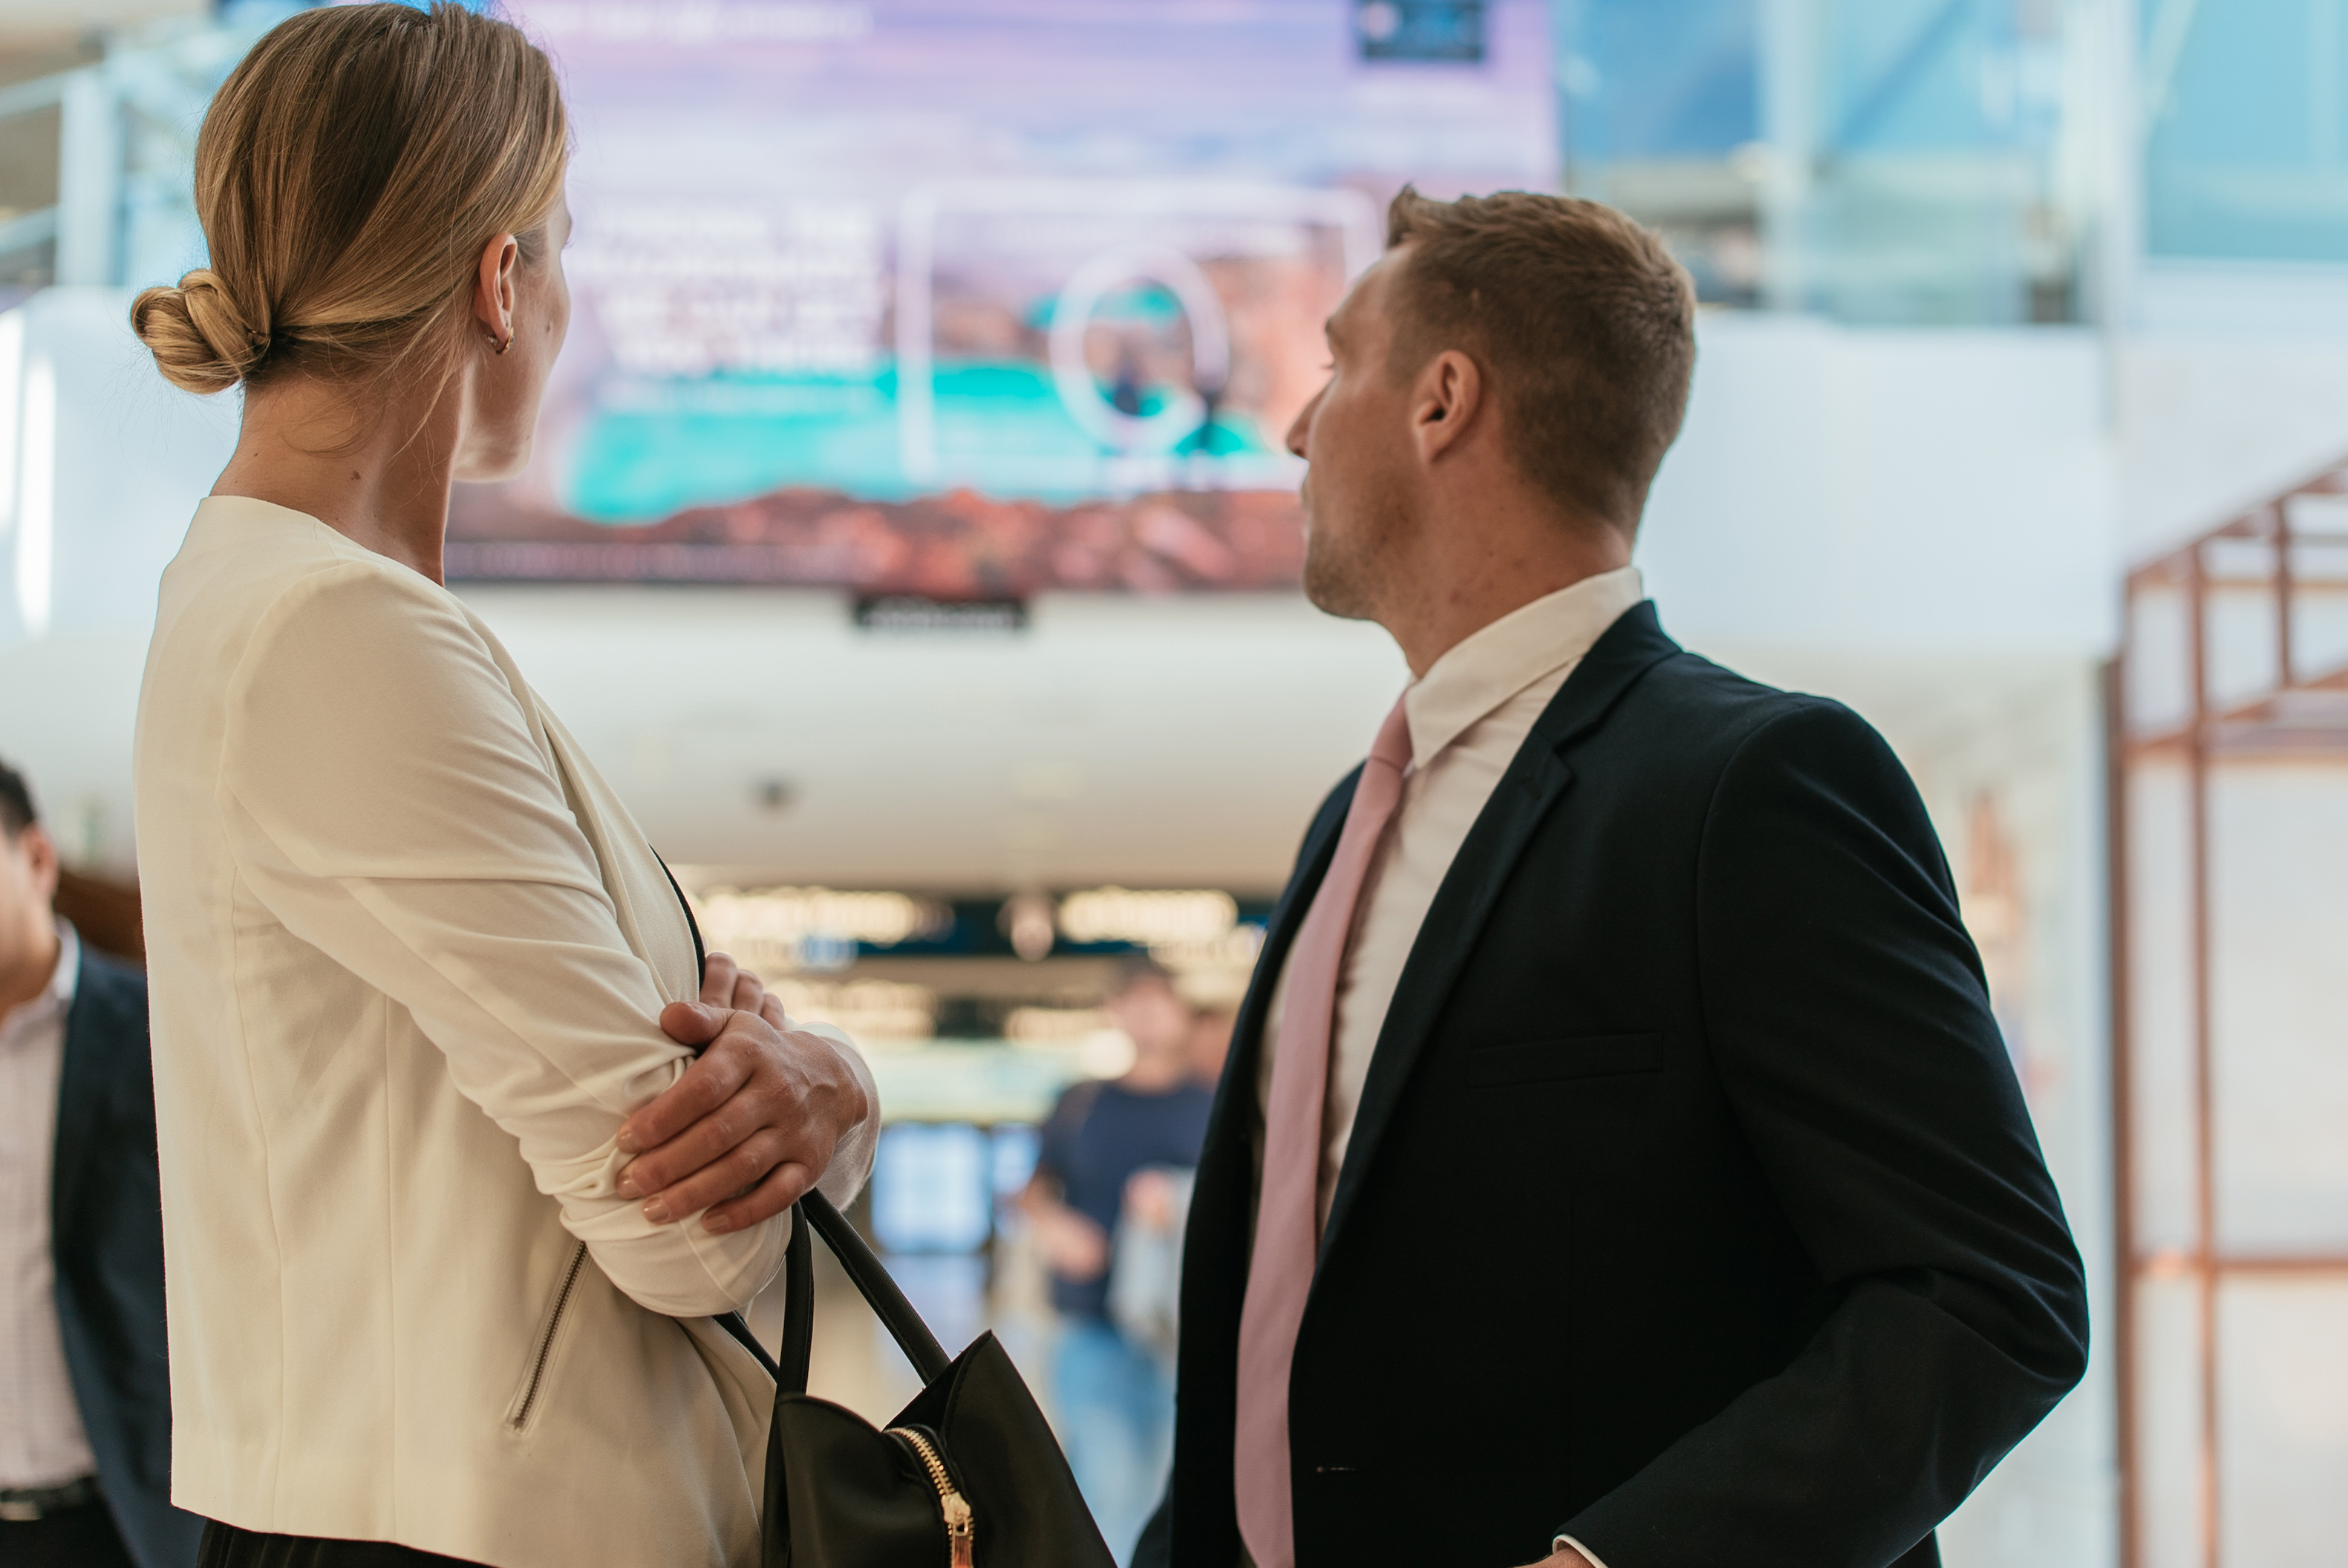 Study: 'Airports: Open for Business' Via JCDecaux